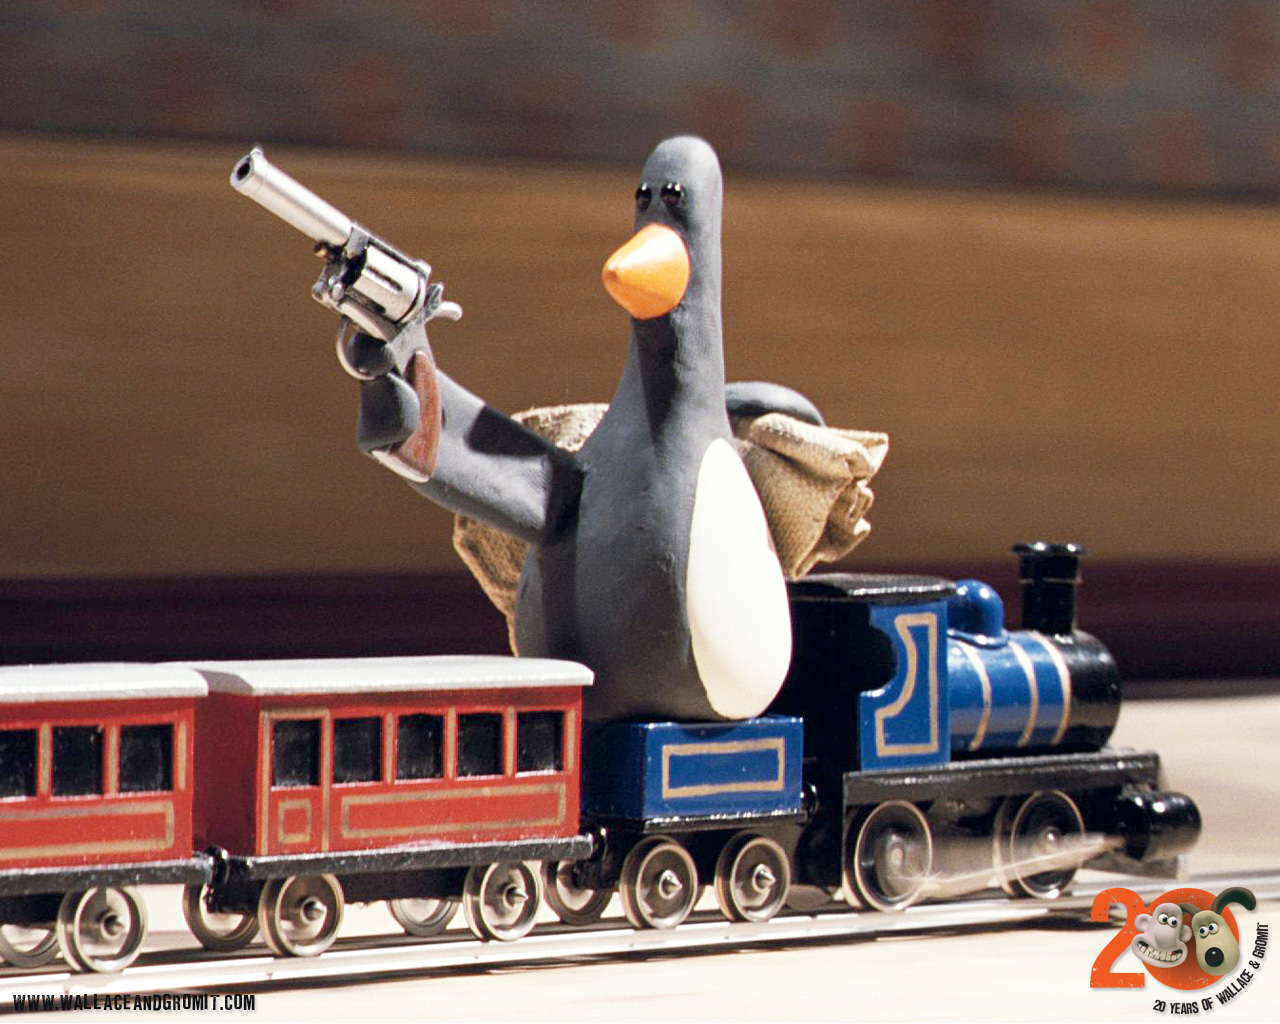 Evil penguin wallace and gromit - photo#13